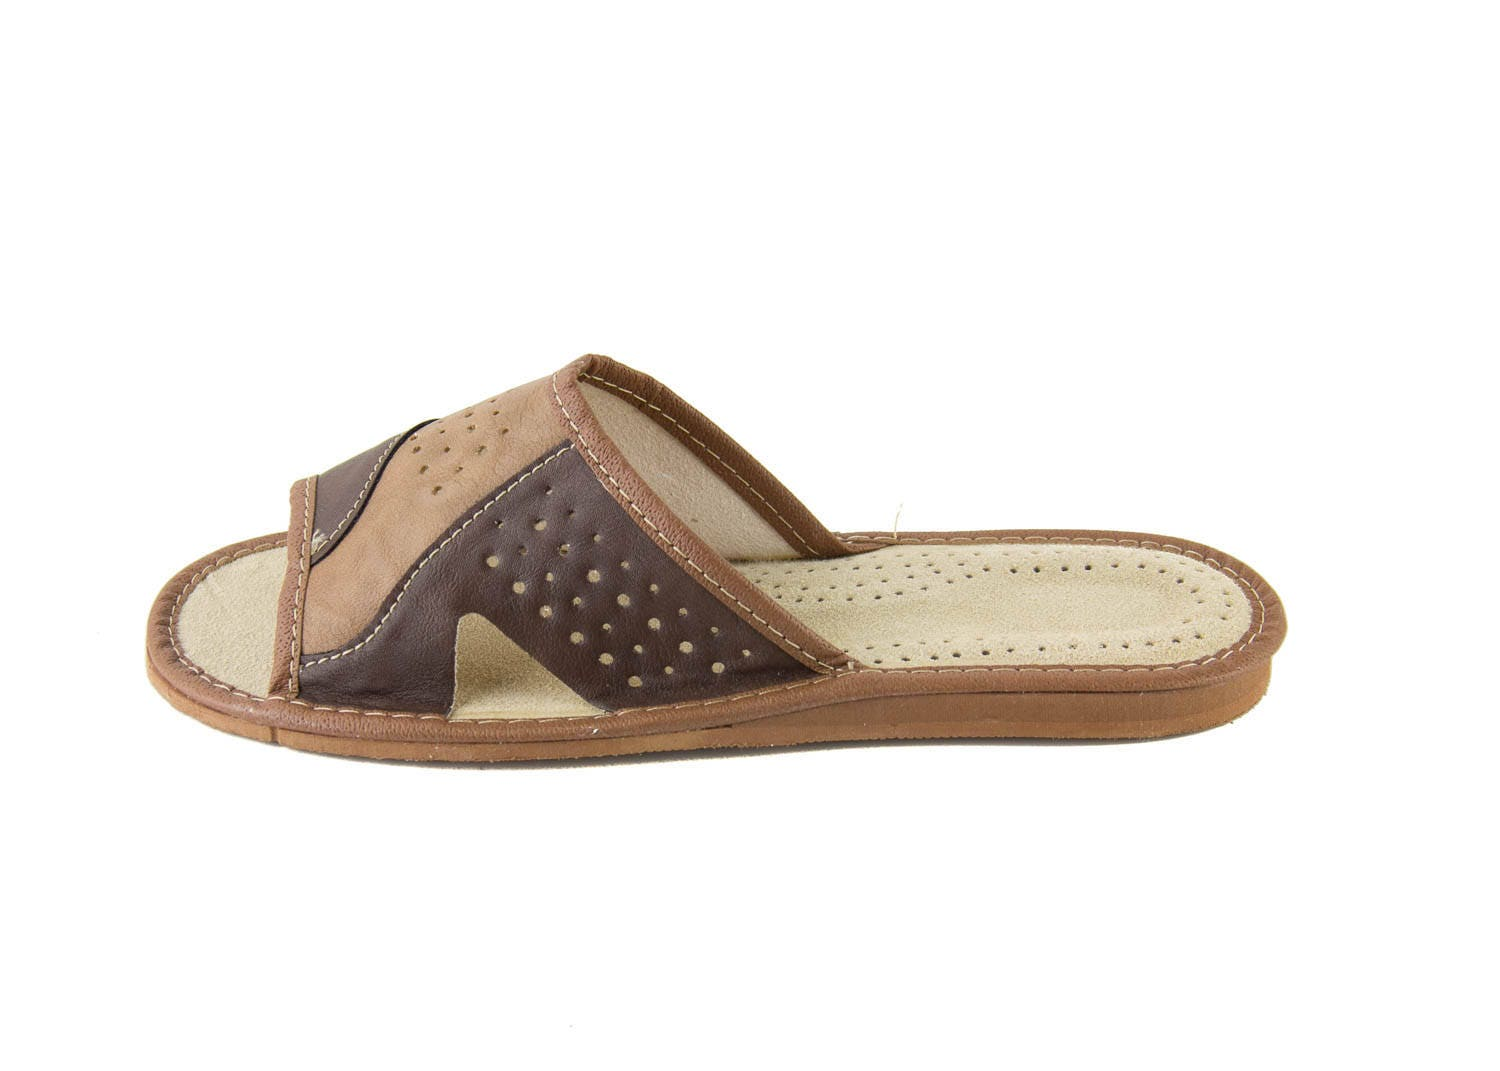 aa6609e26ea9e Mens natural leather slippers! Everyday Slippers! open toe slippers ...